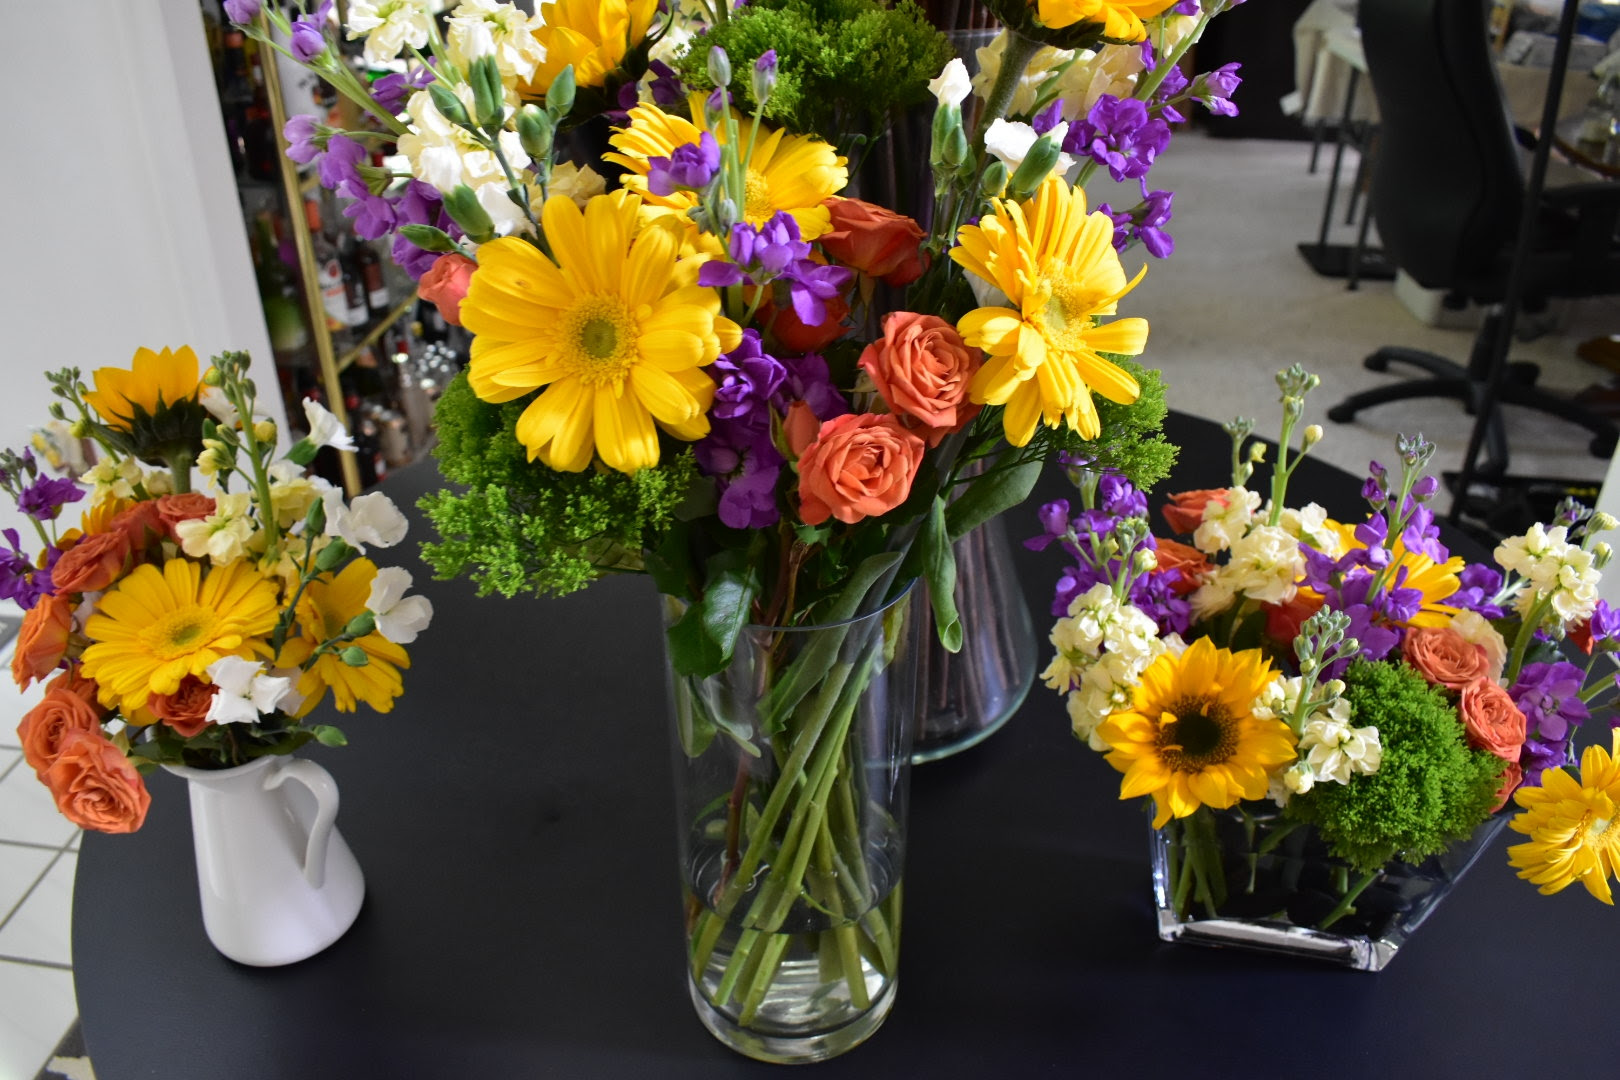 Easy Diy Grocery Store Flower Bouquet Ideas For All Occasions